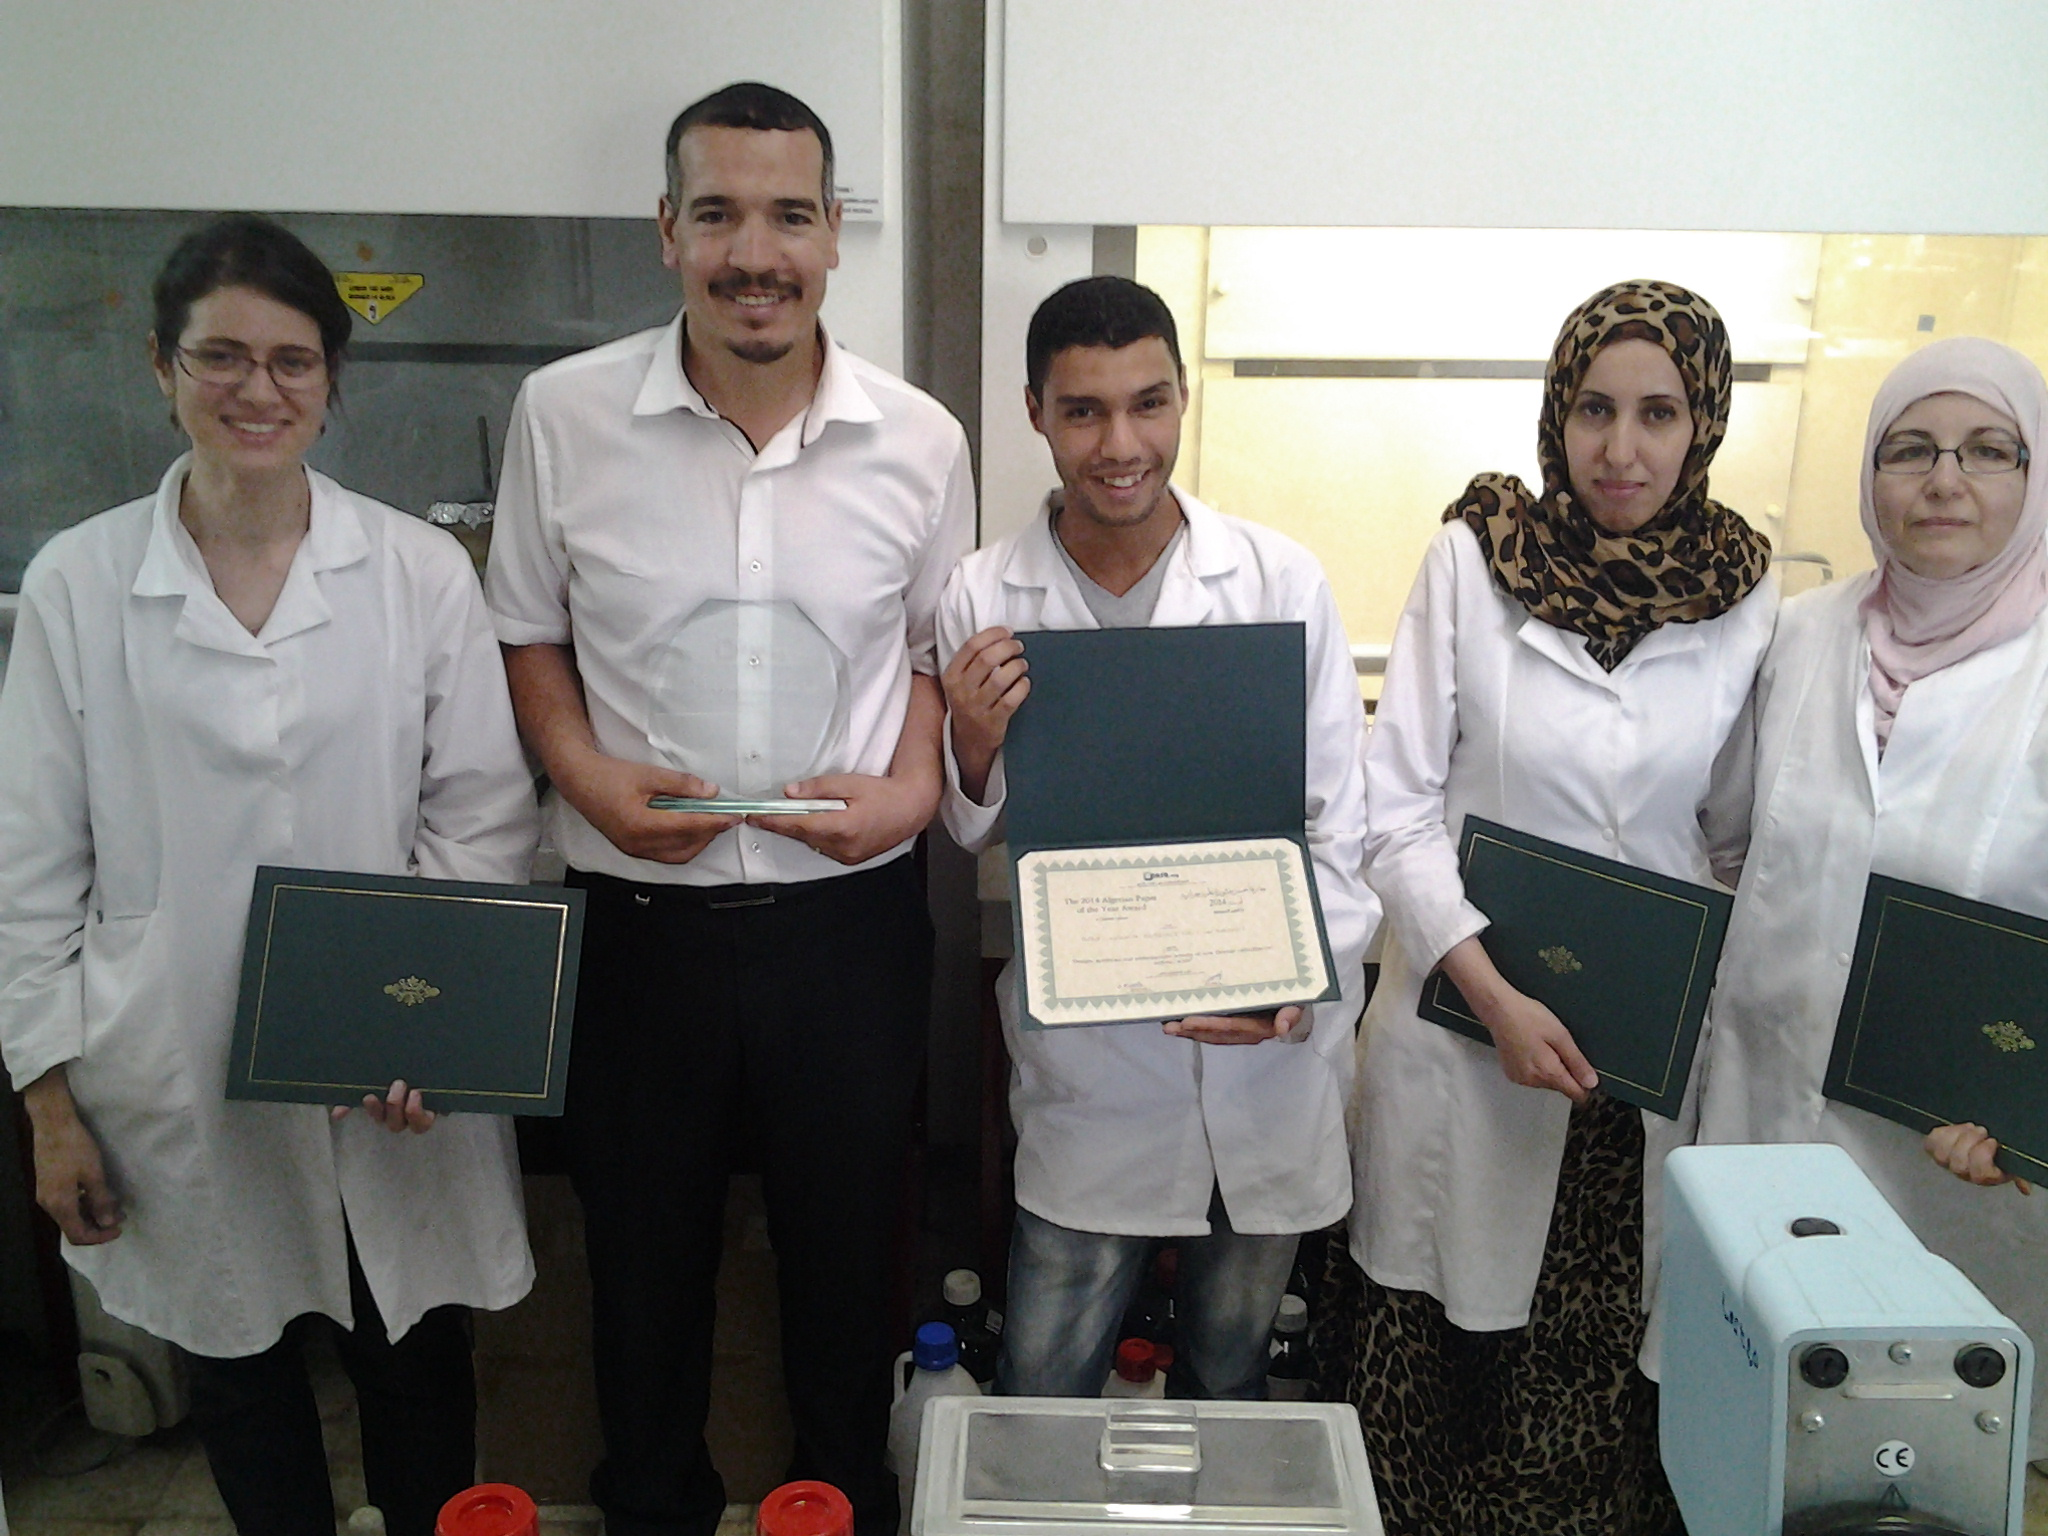 Interview | Winners of the 2014 Algerian Paper of the Year Award in